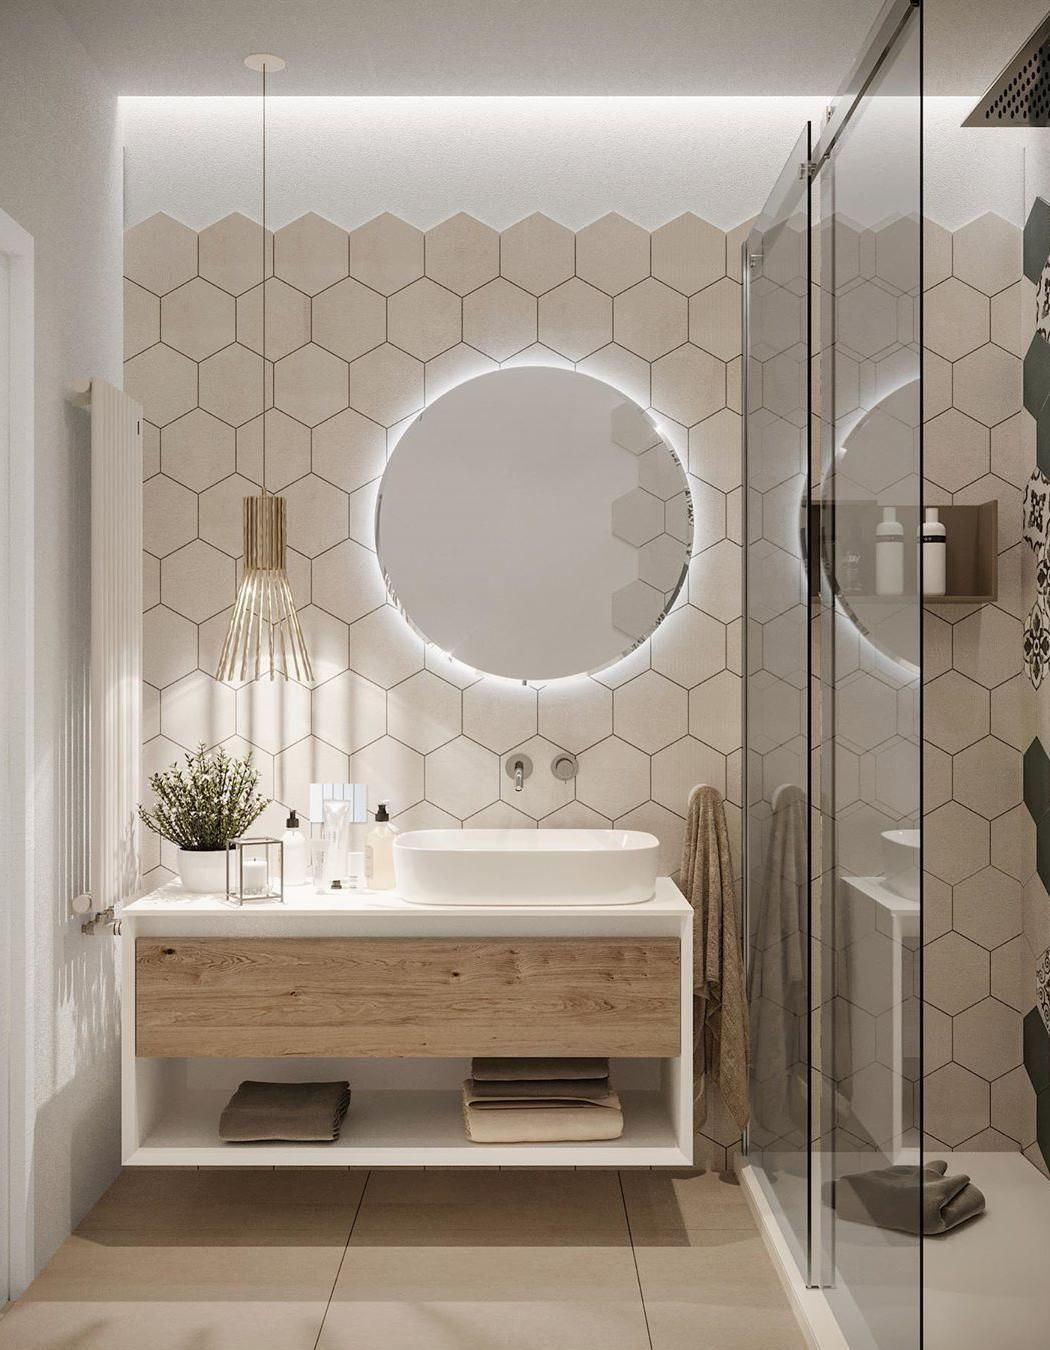 50 Small Bathroom Design Ideas For 2020 These Trendy Home Decor Ideas Would Gain You Amazing Compl In 2020 Bathroom Interior Bathroom Interior Design Trendy Home Decor